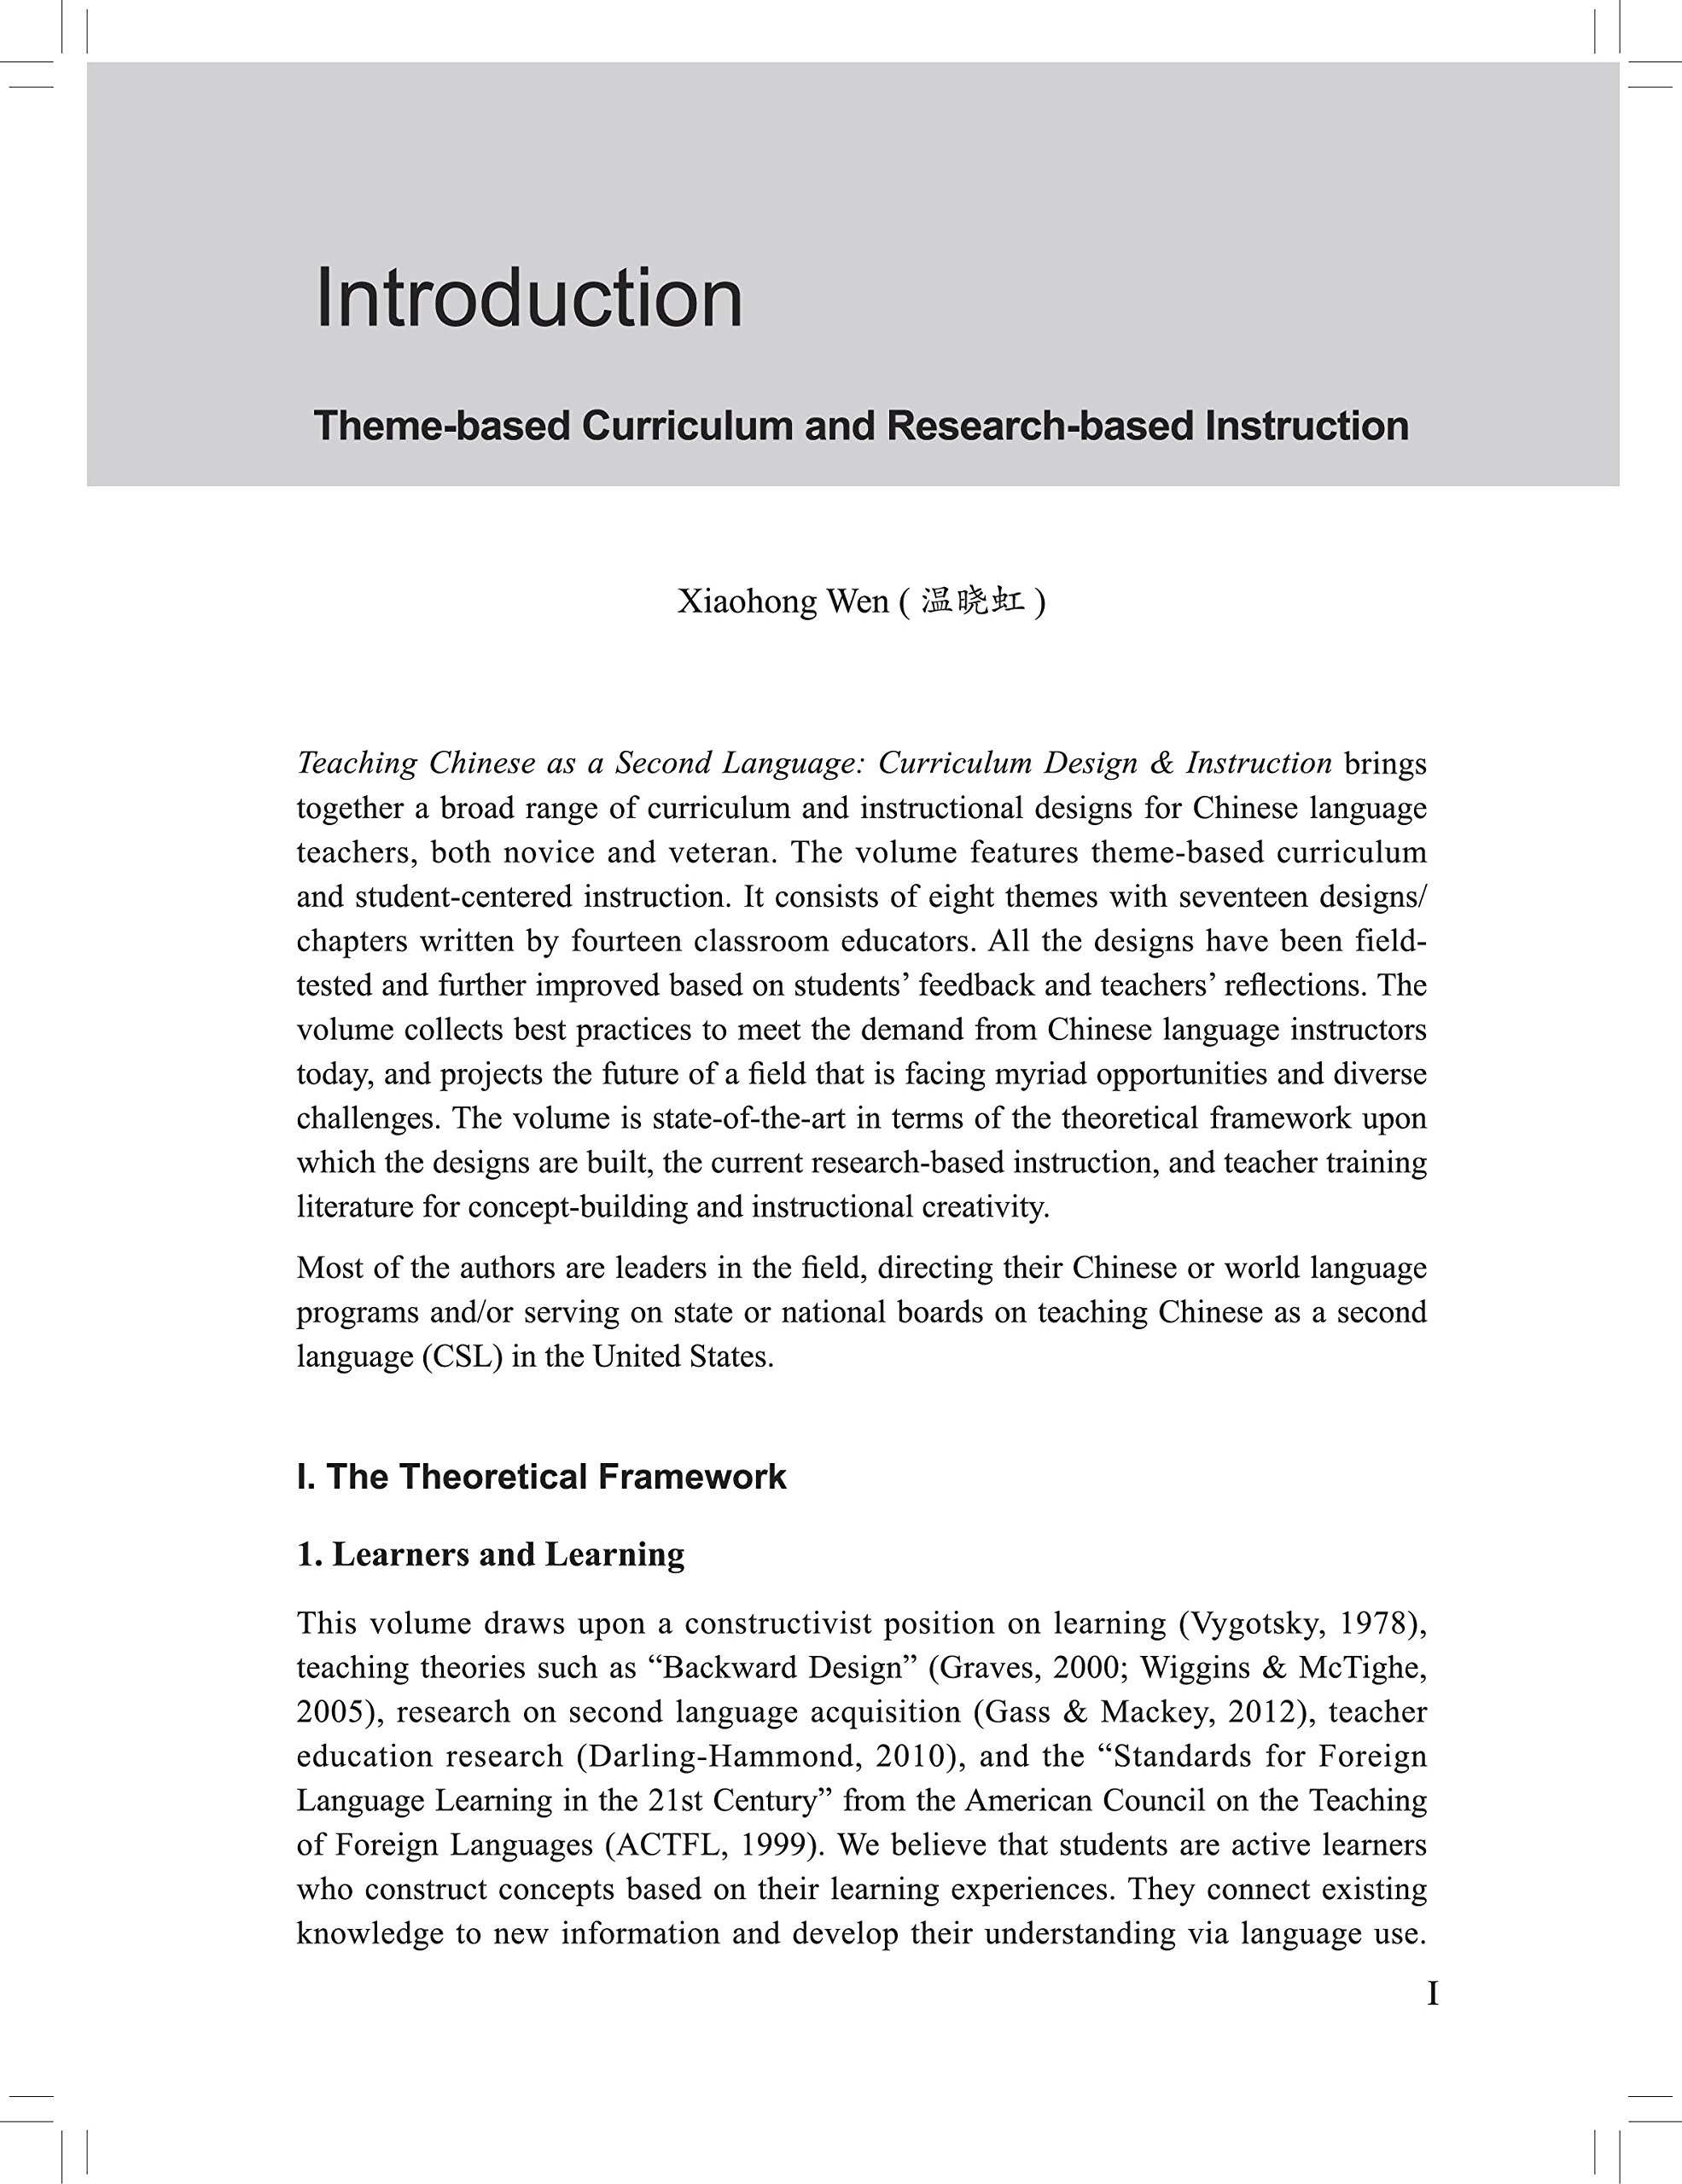 Teaching Chinese As A Second Language Curriculum Design - World language curriculum